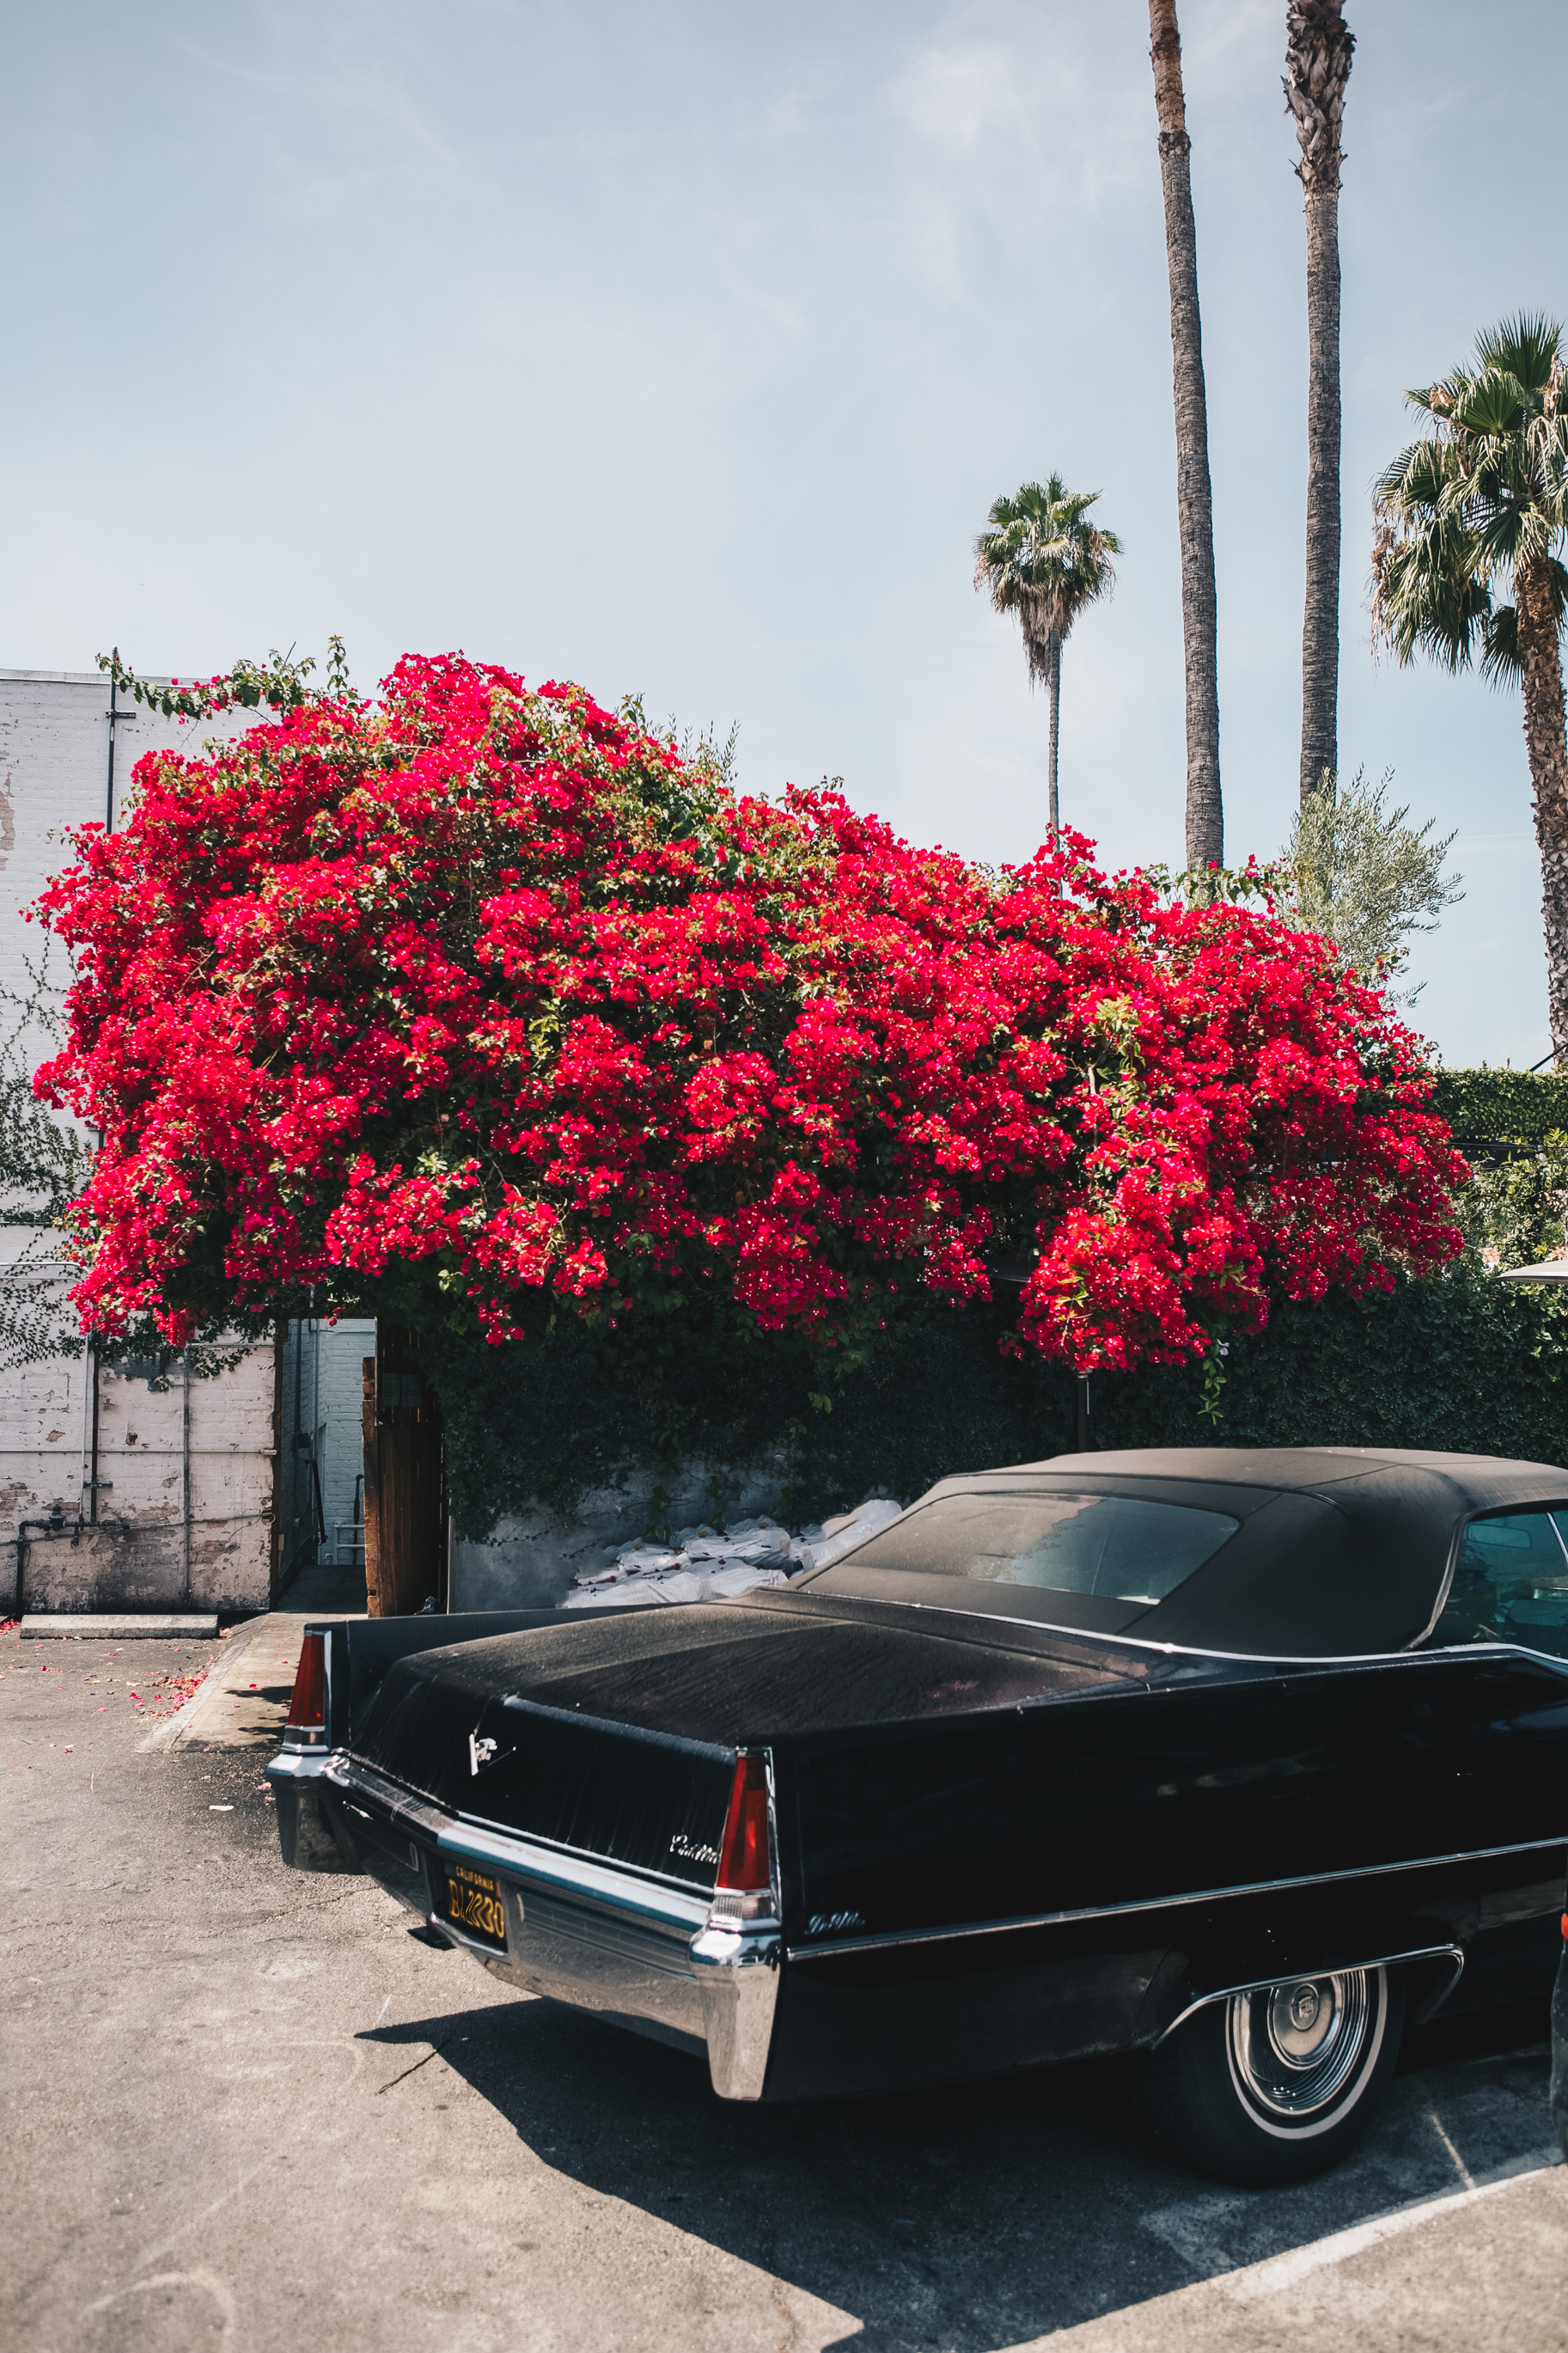 Vintage Car in Los Feliz, LA California. Photograph by Sarah Natsumi Moore